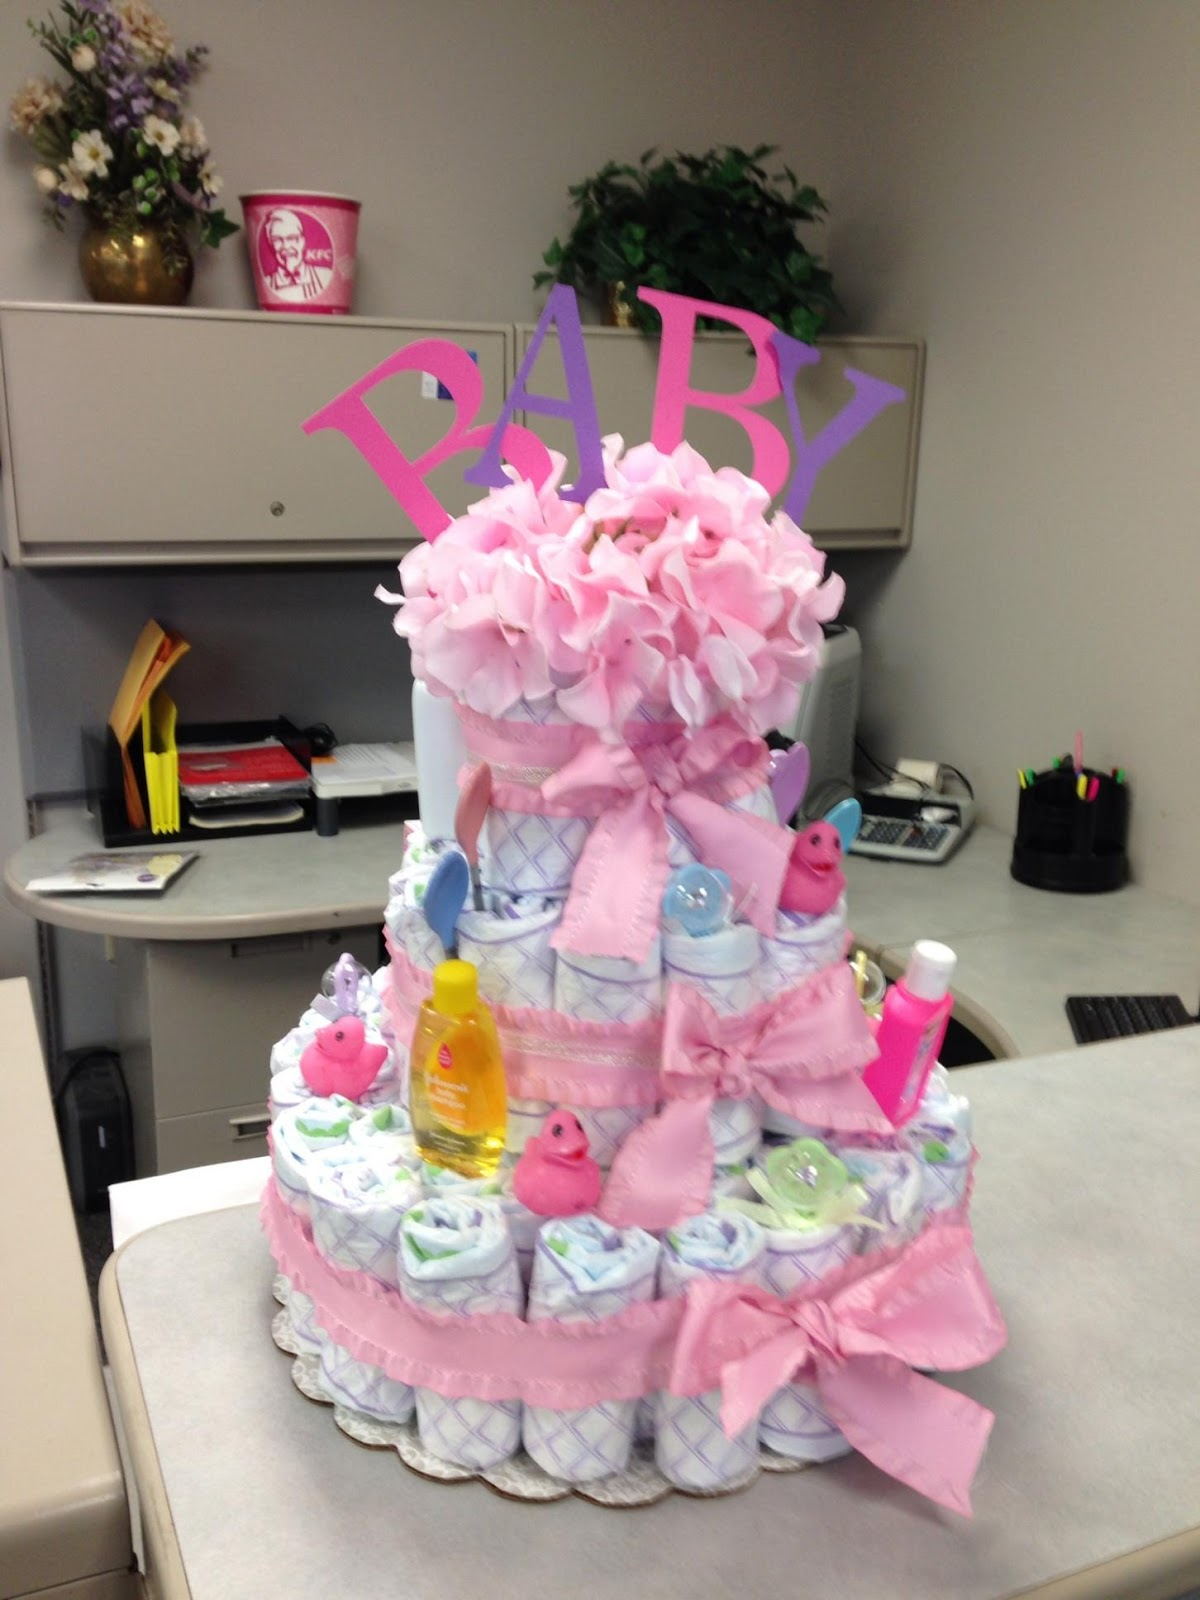 The beauty of etcetera diy baby diaper cake at craft stores they sell kits to do these but honestly it was super simple to do this by yourself and the kits are expensive so it saves your money solutioingenieria Images